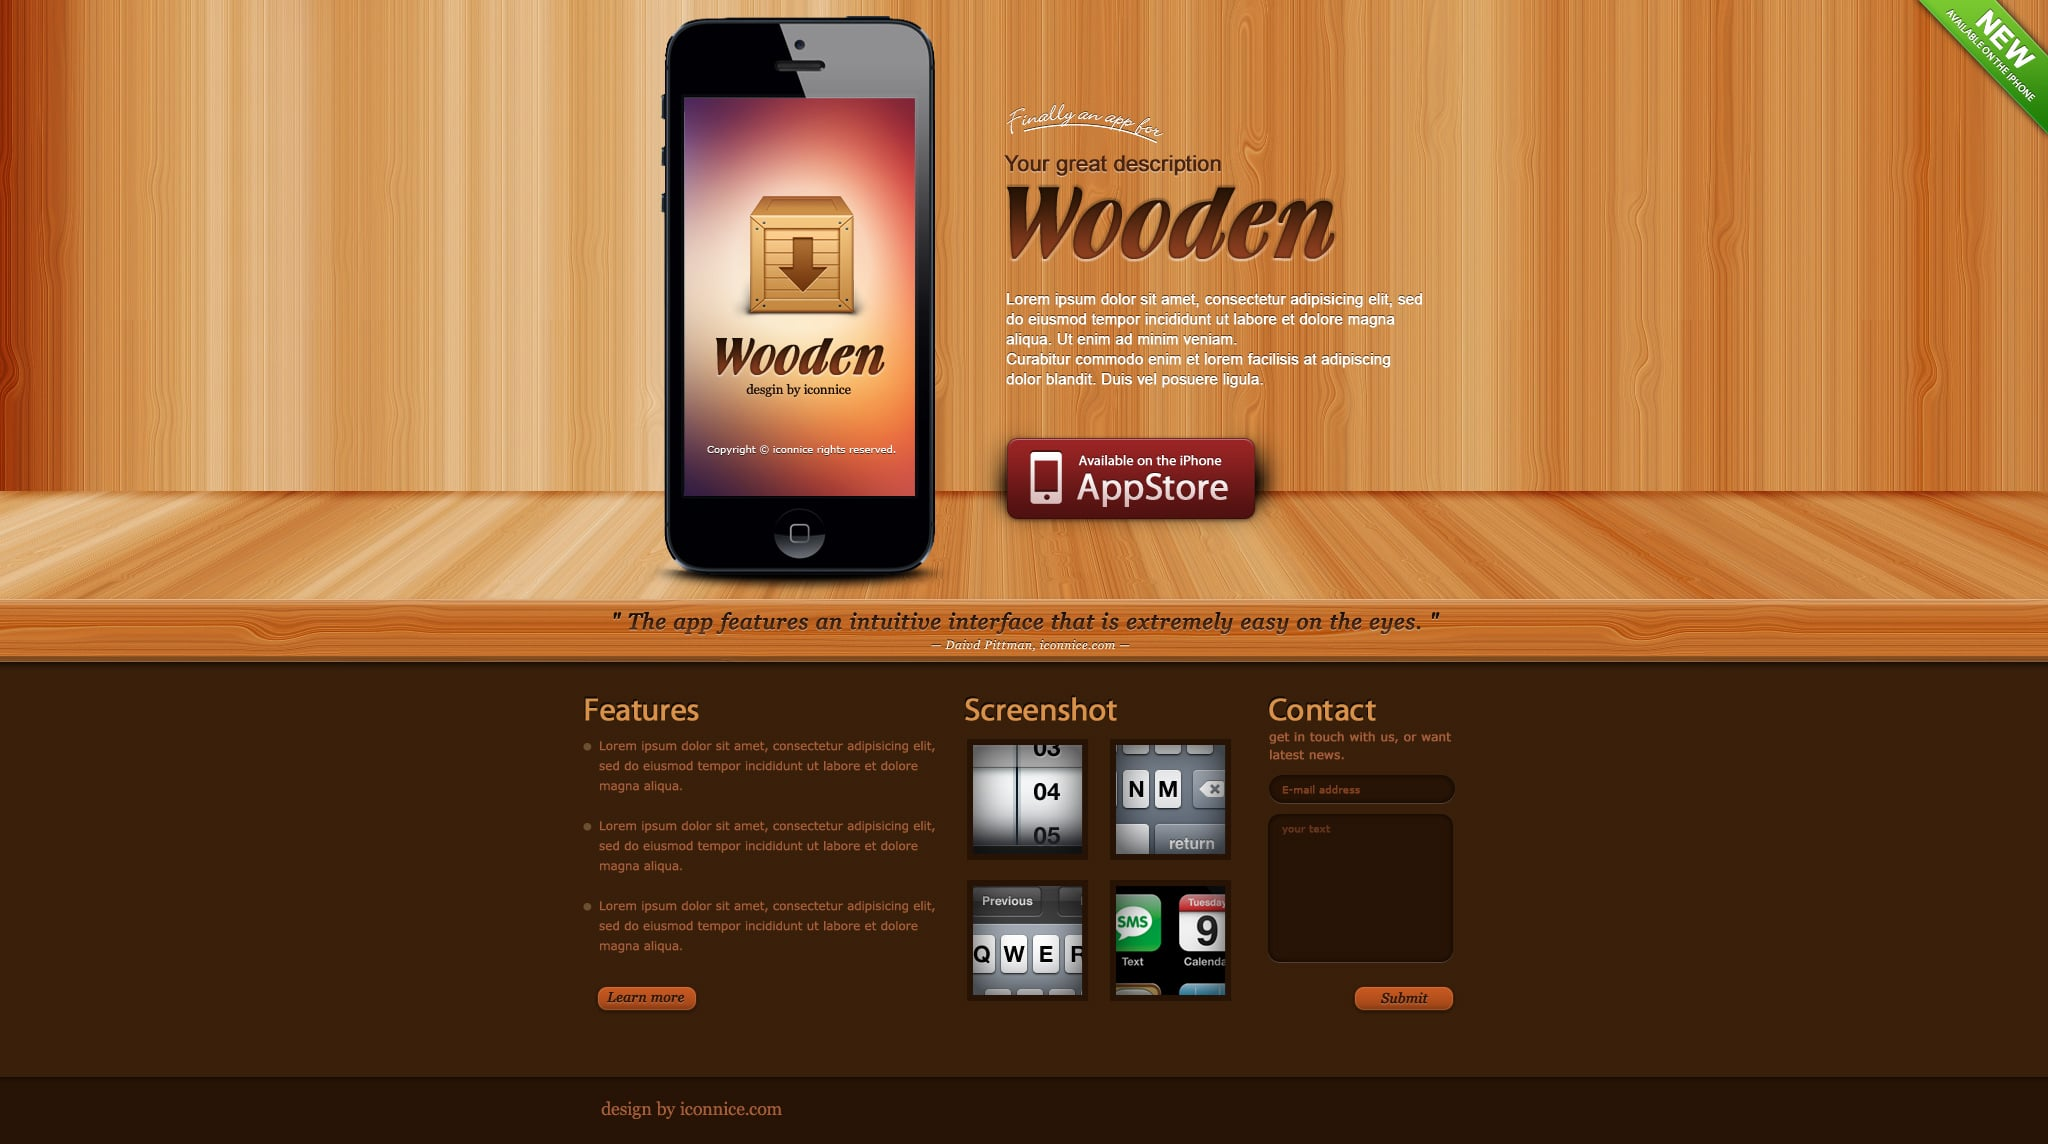 IconNice Big Bundle: 25 iOS app web templates and more! - wooden iPhone 5